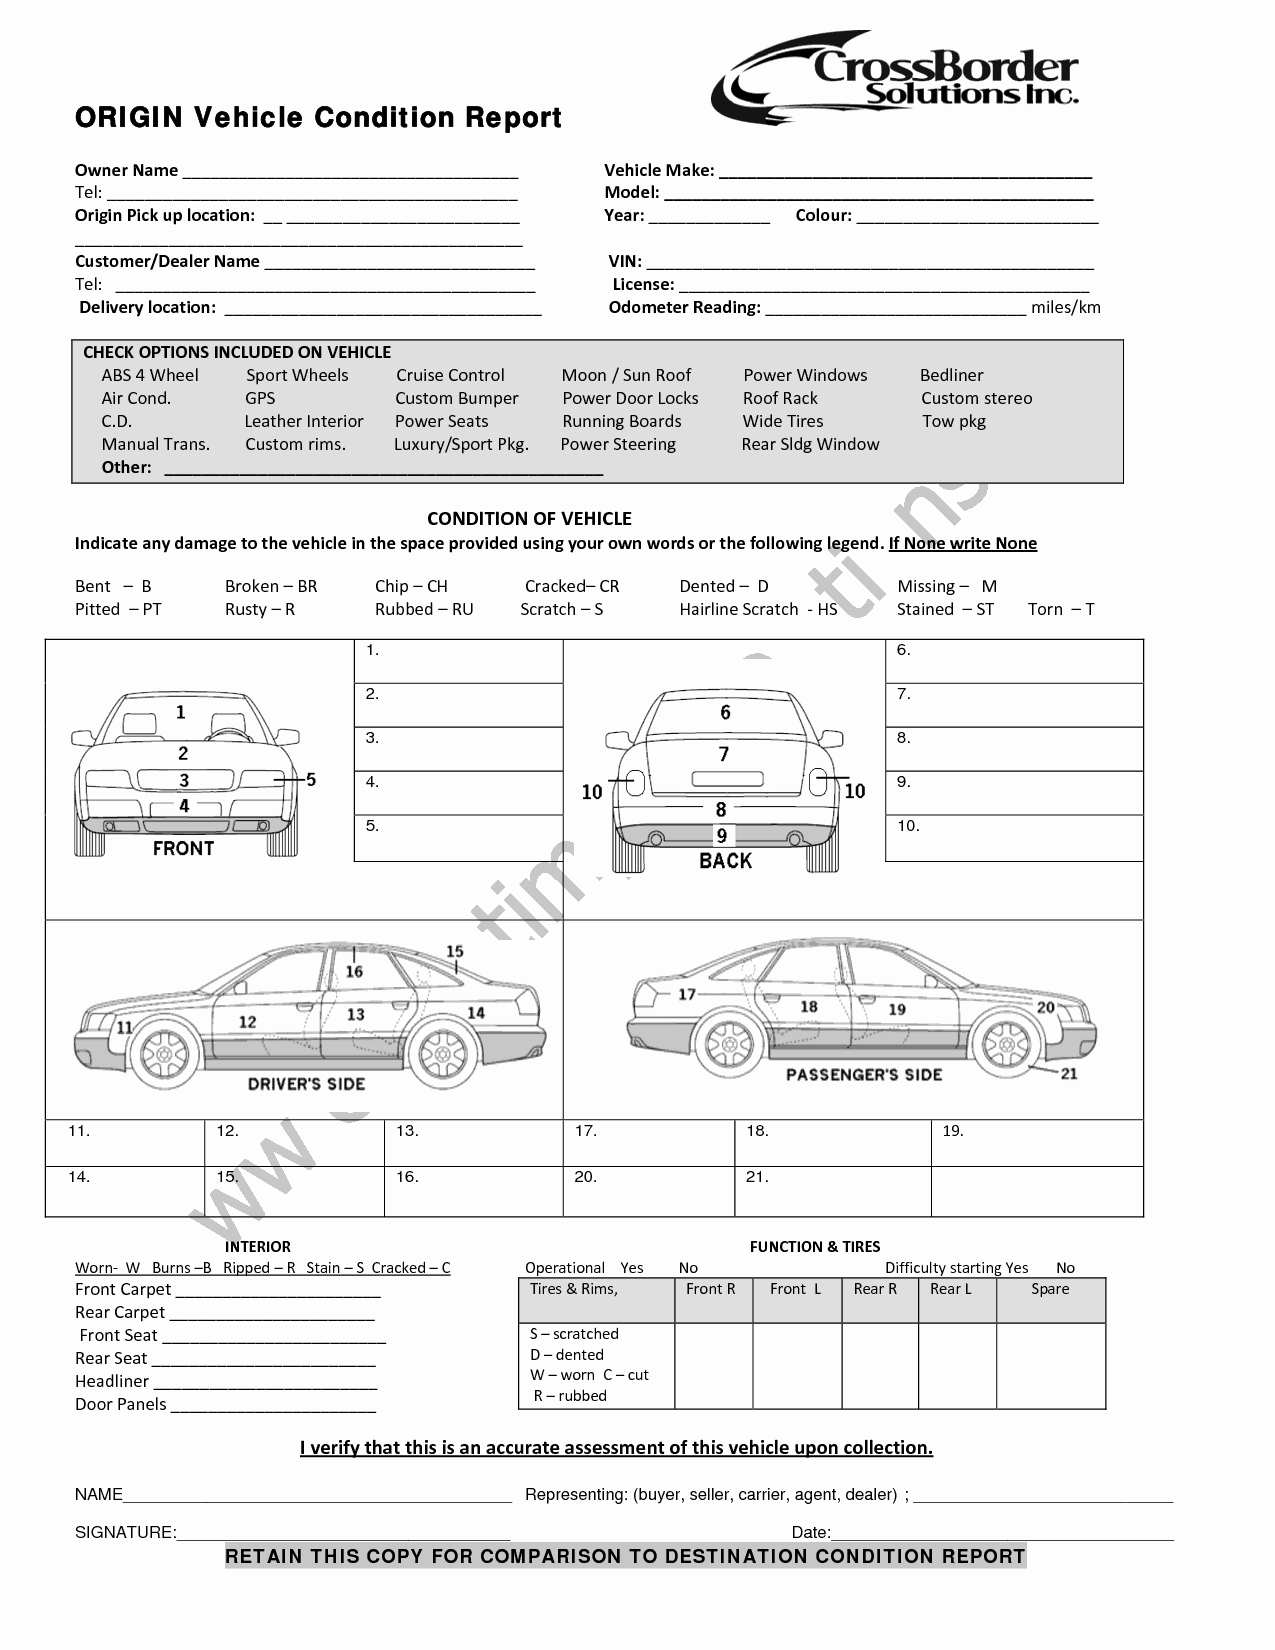 Vehicle Condition Report Template Best Of 5 Vehicle Condition Reports Word Excel Templates